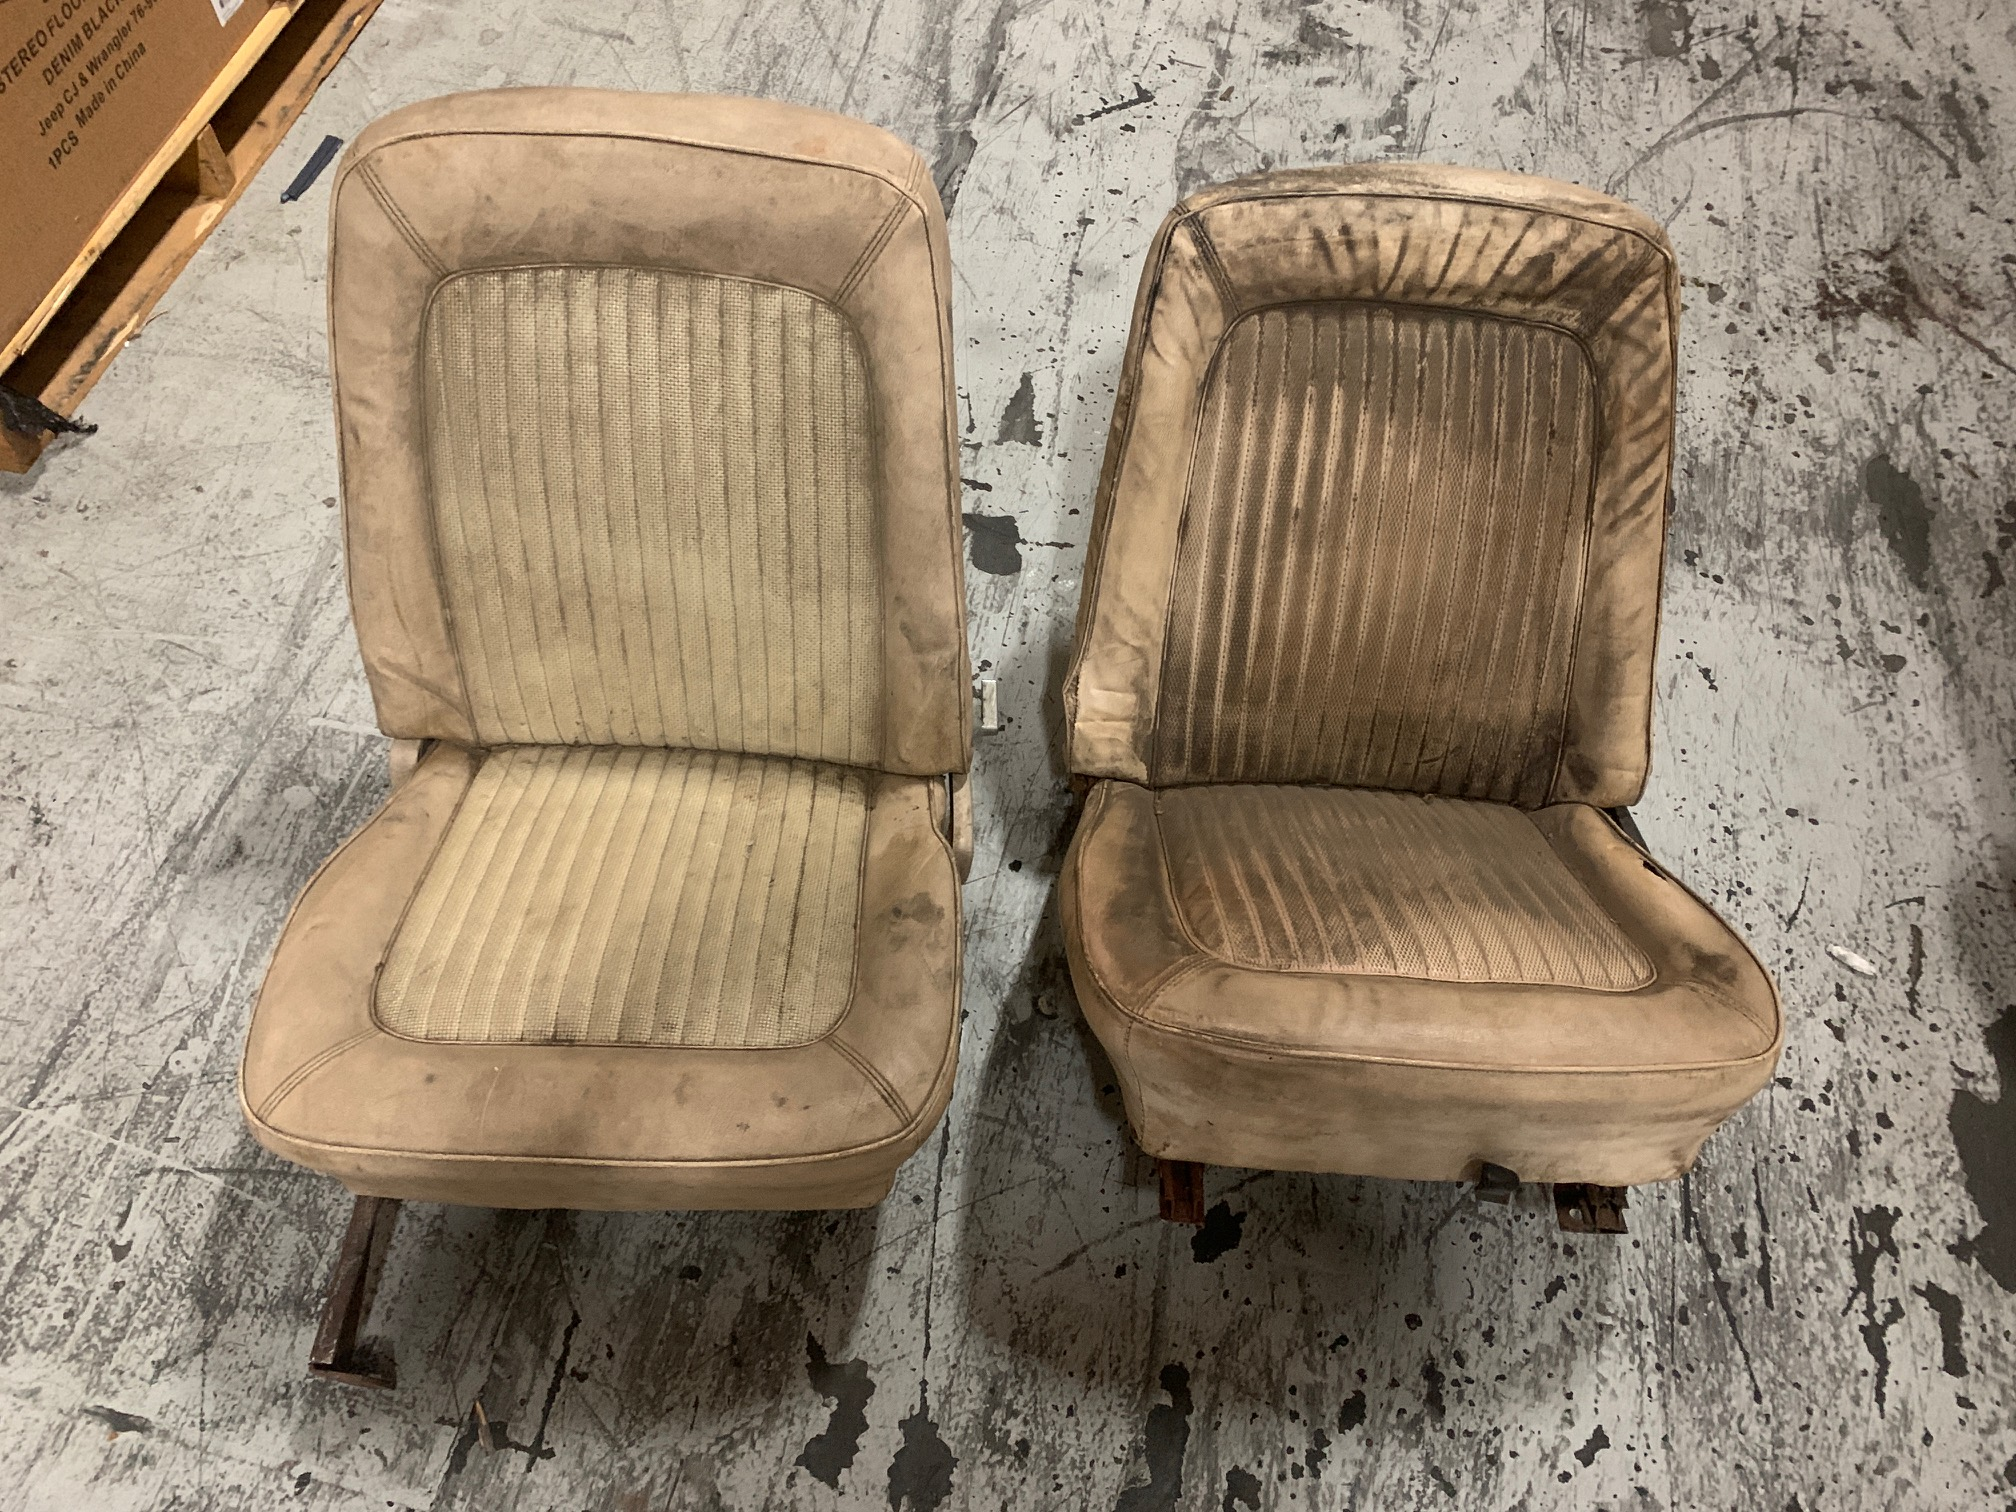 Image for product CLONED-1002-4front-oe-green-houndstooth-bucket-seats-1